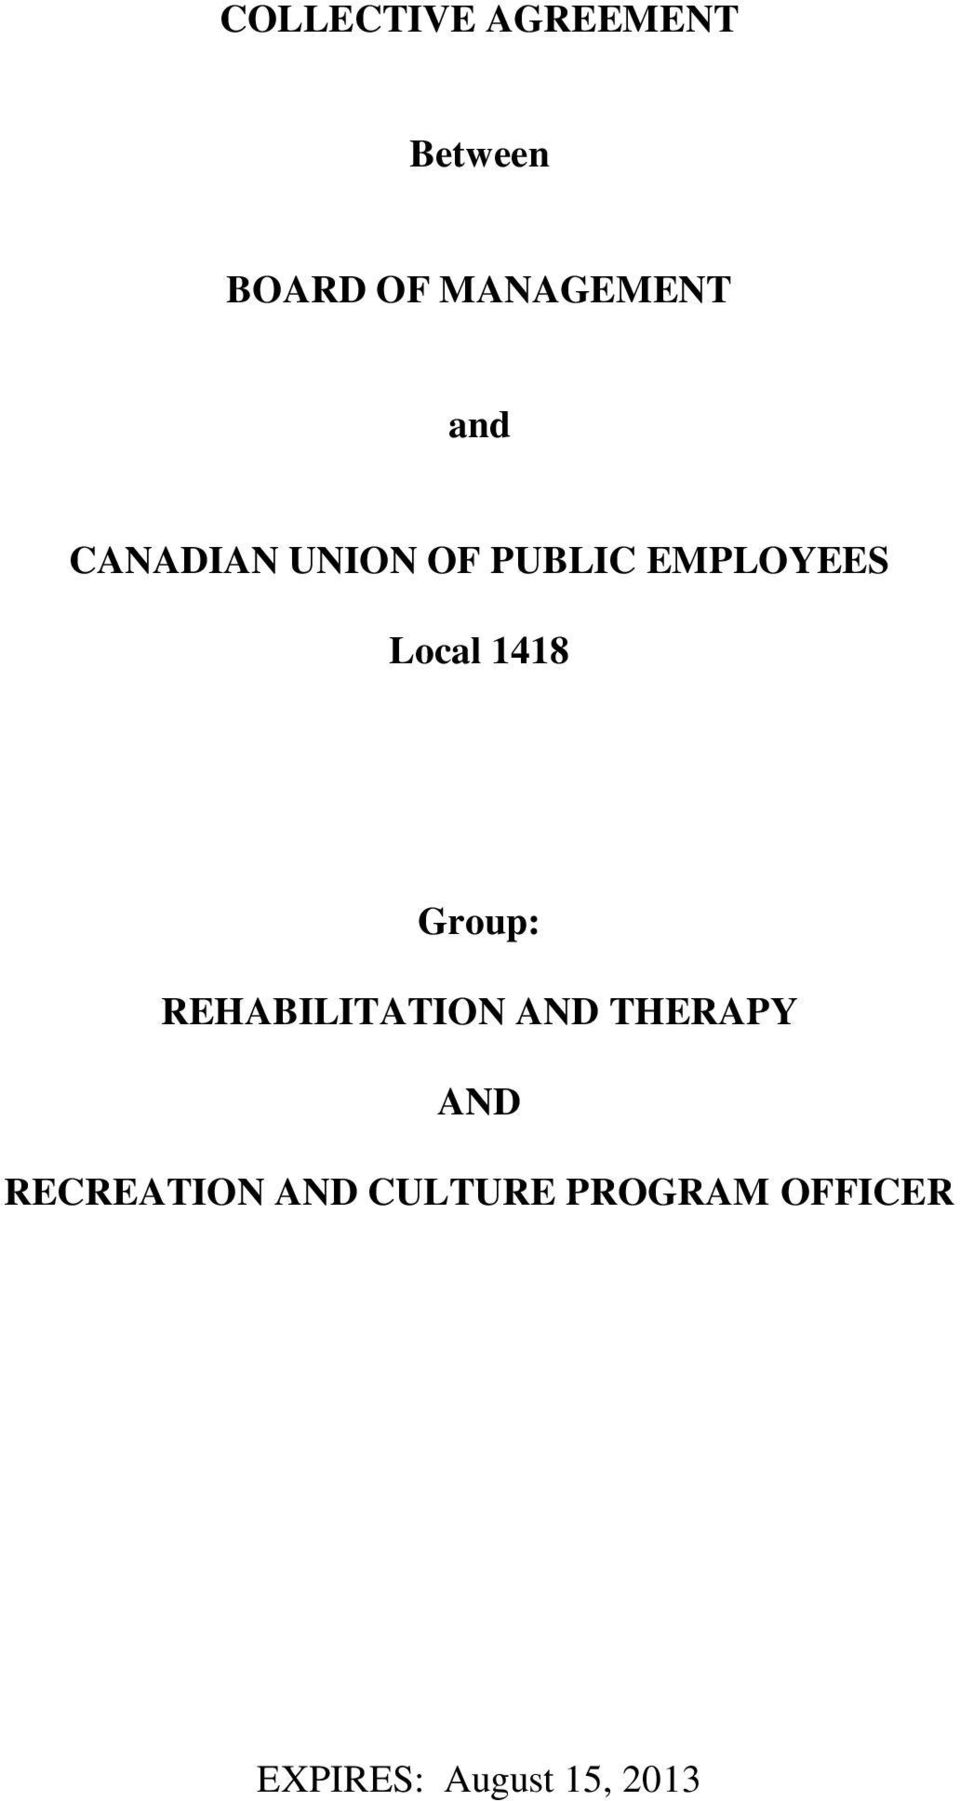 Group: REHABILITATION AND THERAPY AND RECREATION